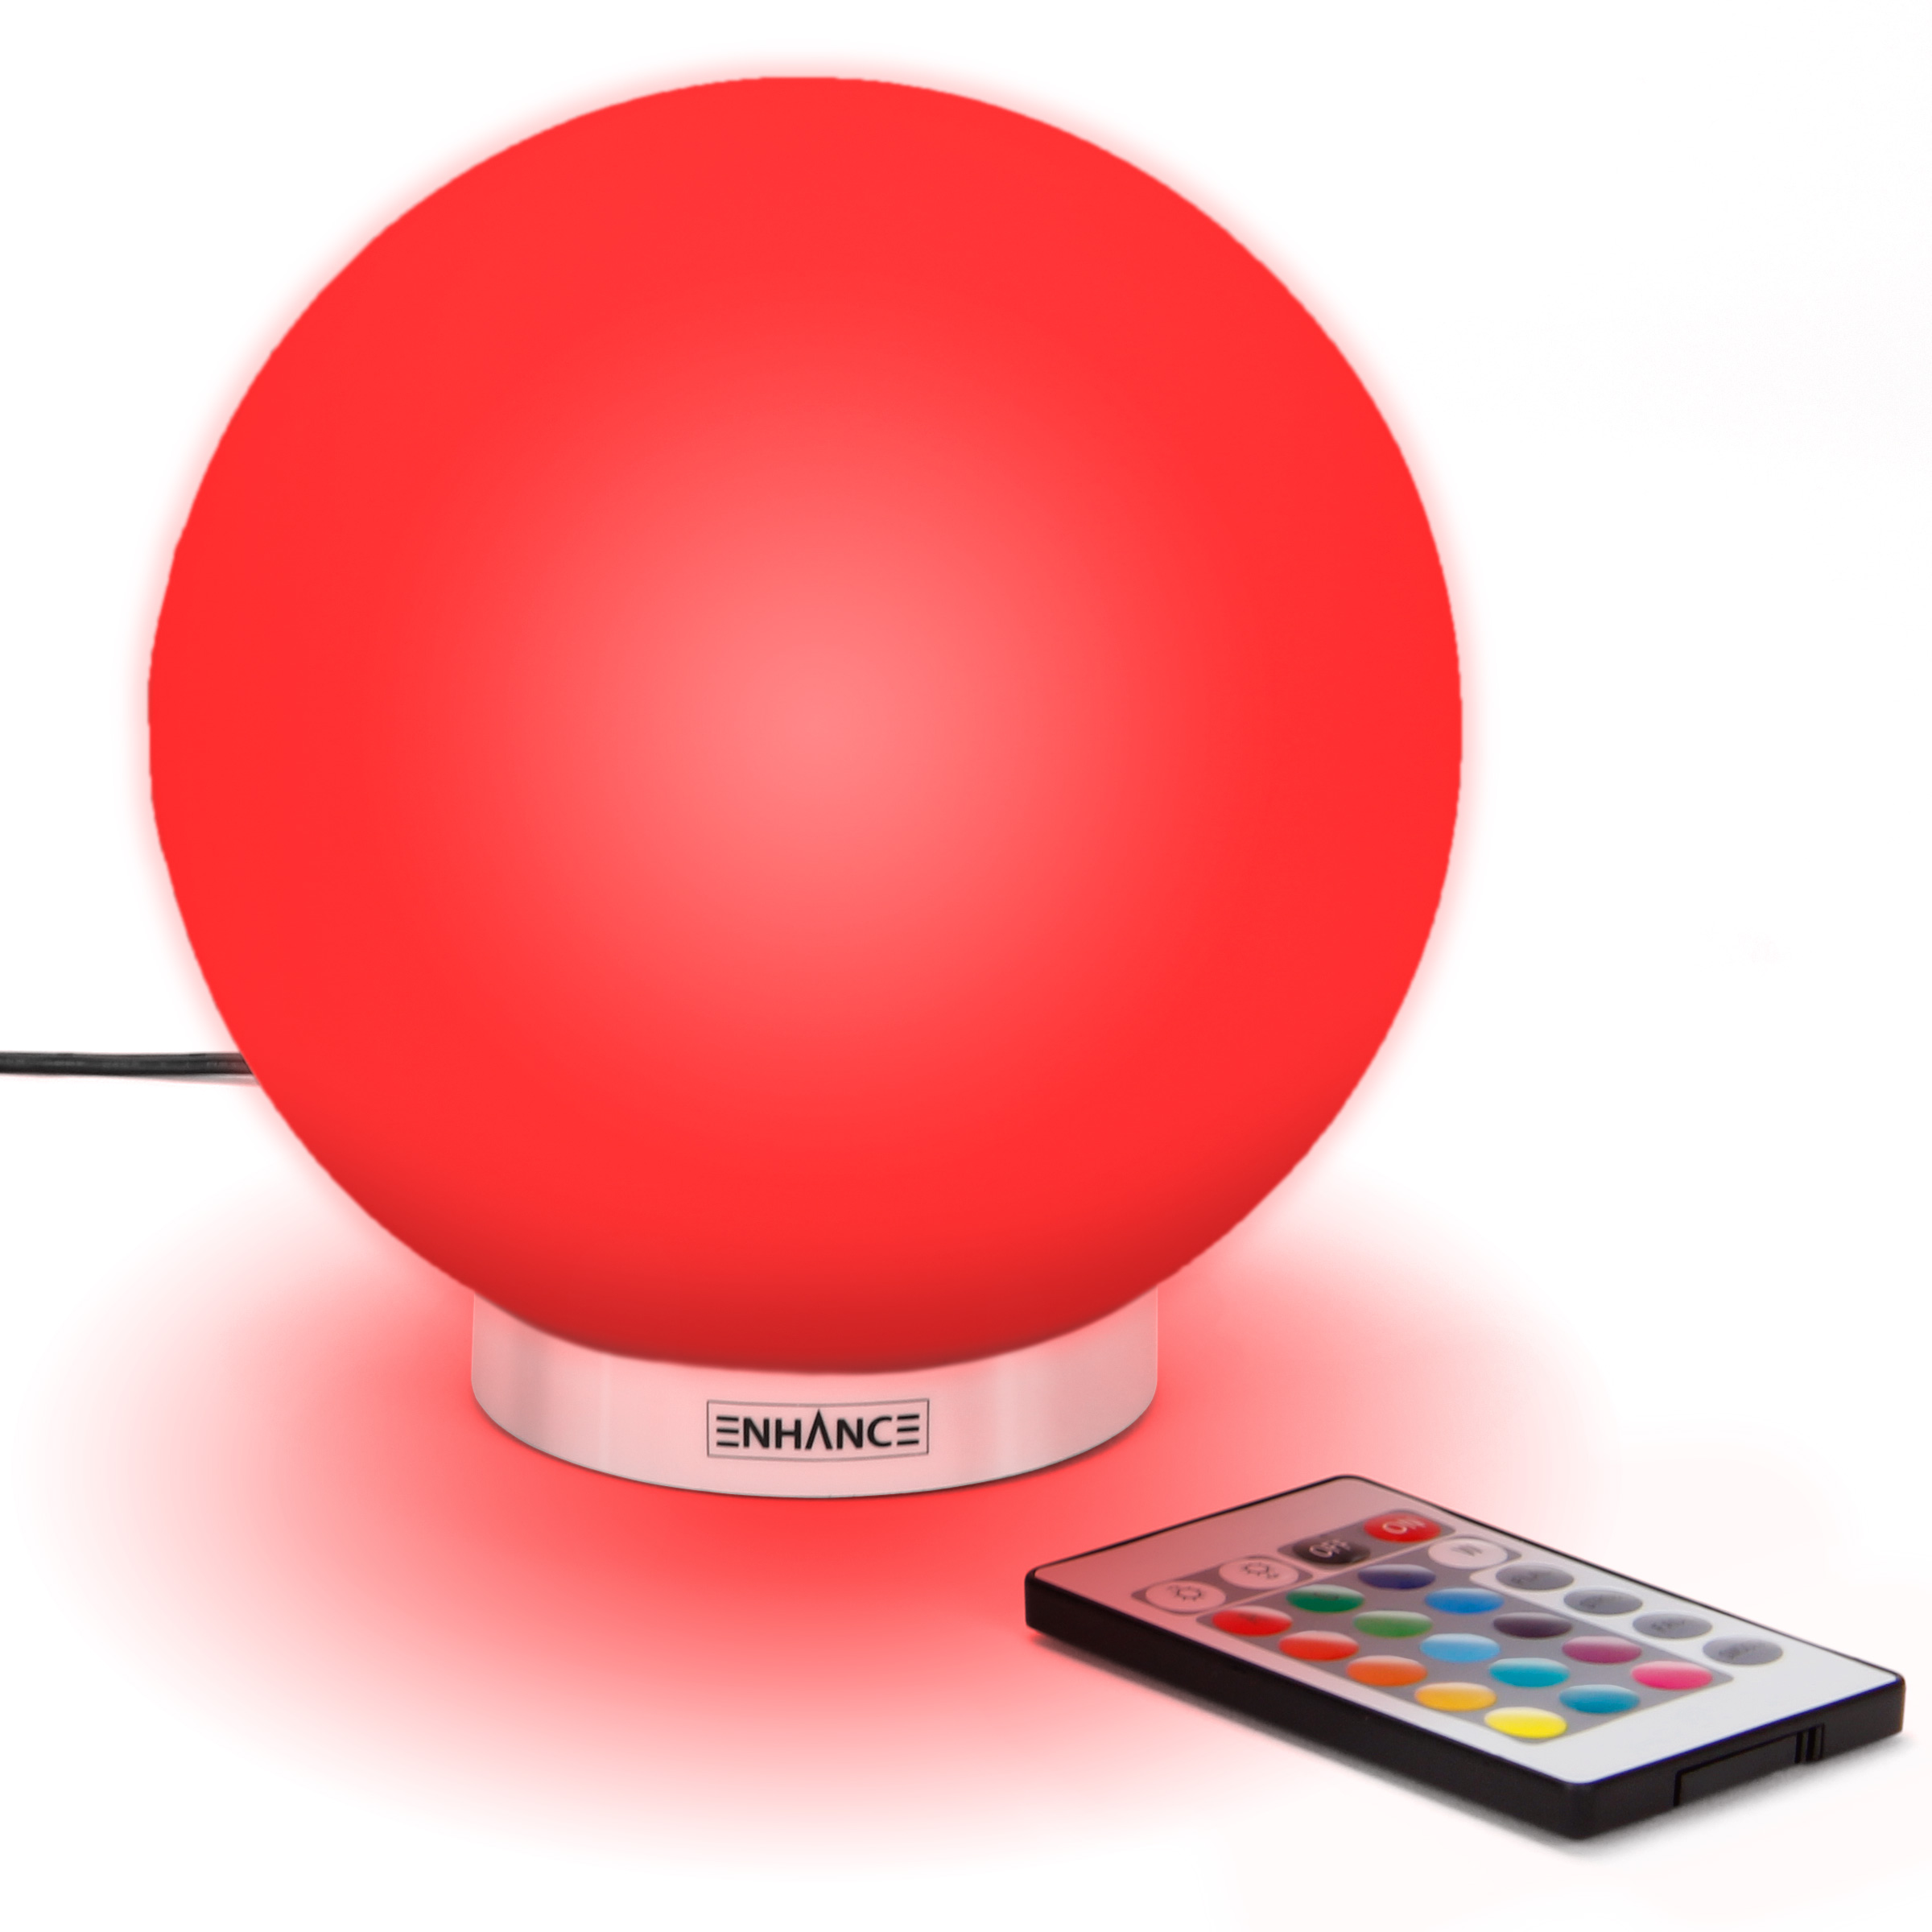 enhance led globe kid night light lamp ambient bedside silicone color changing lamp 5 9 inch wireless remote control 4 lighting modes dimmable